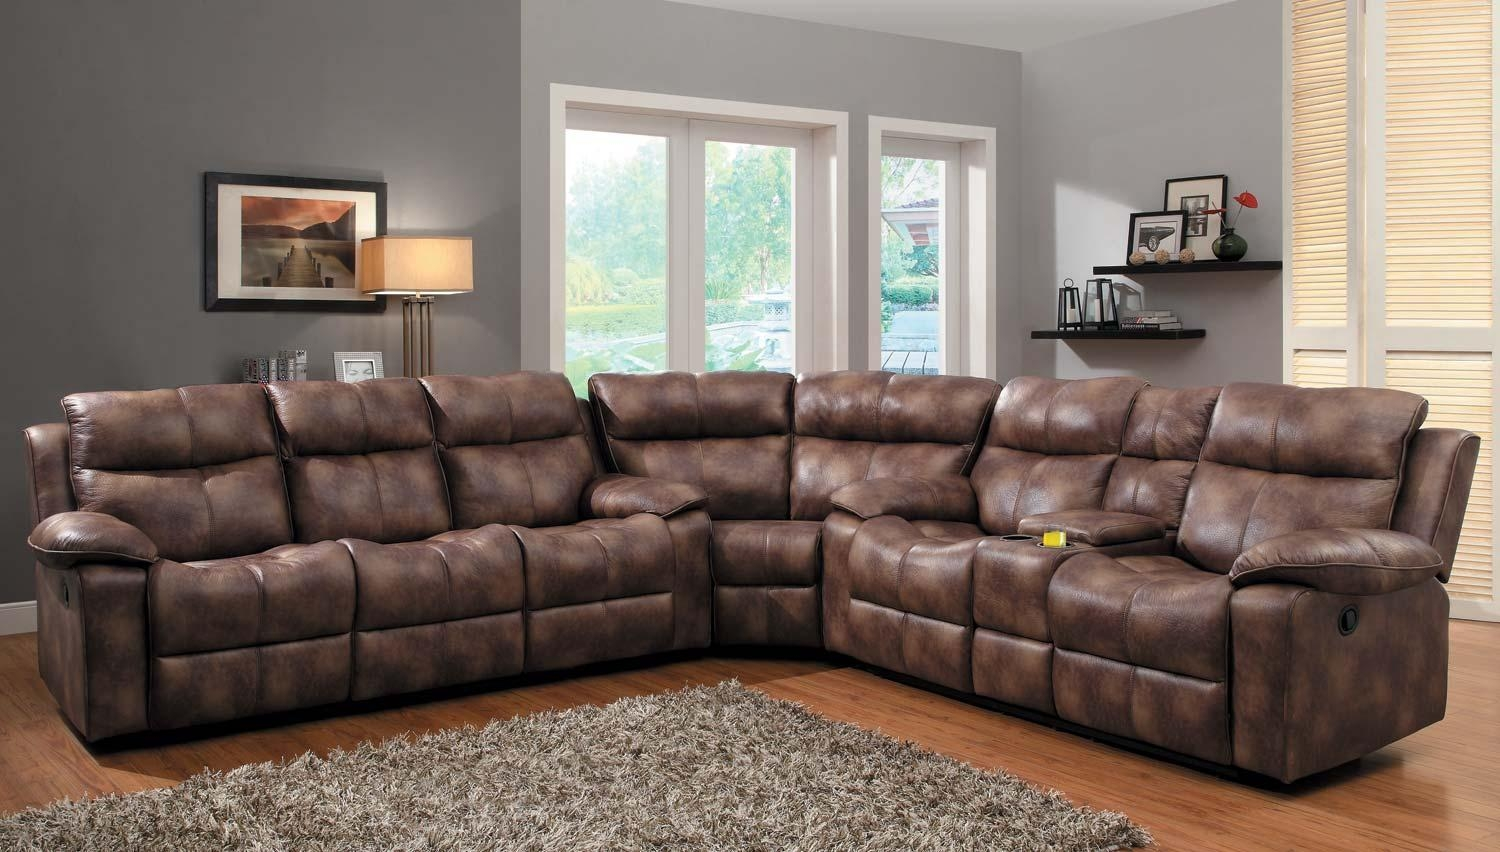 Recliner Sectional Sofas – Sofas Within Sectional Sofa Recliners (Image 16 of 20)